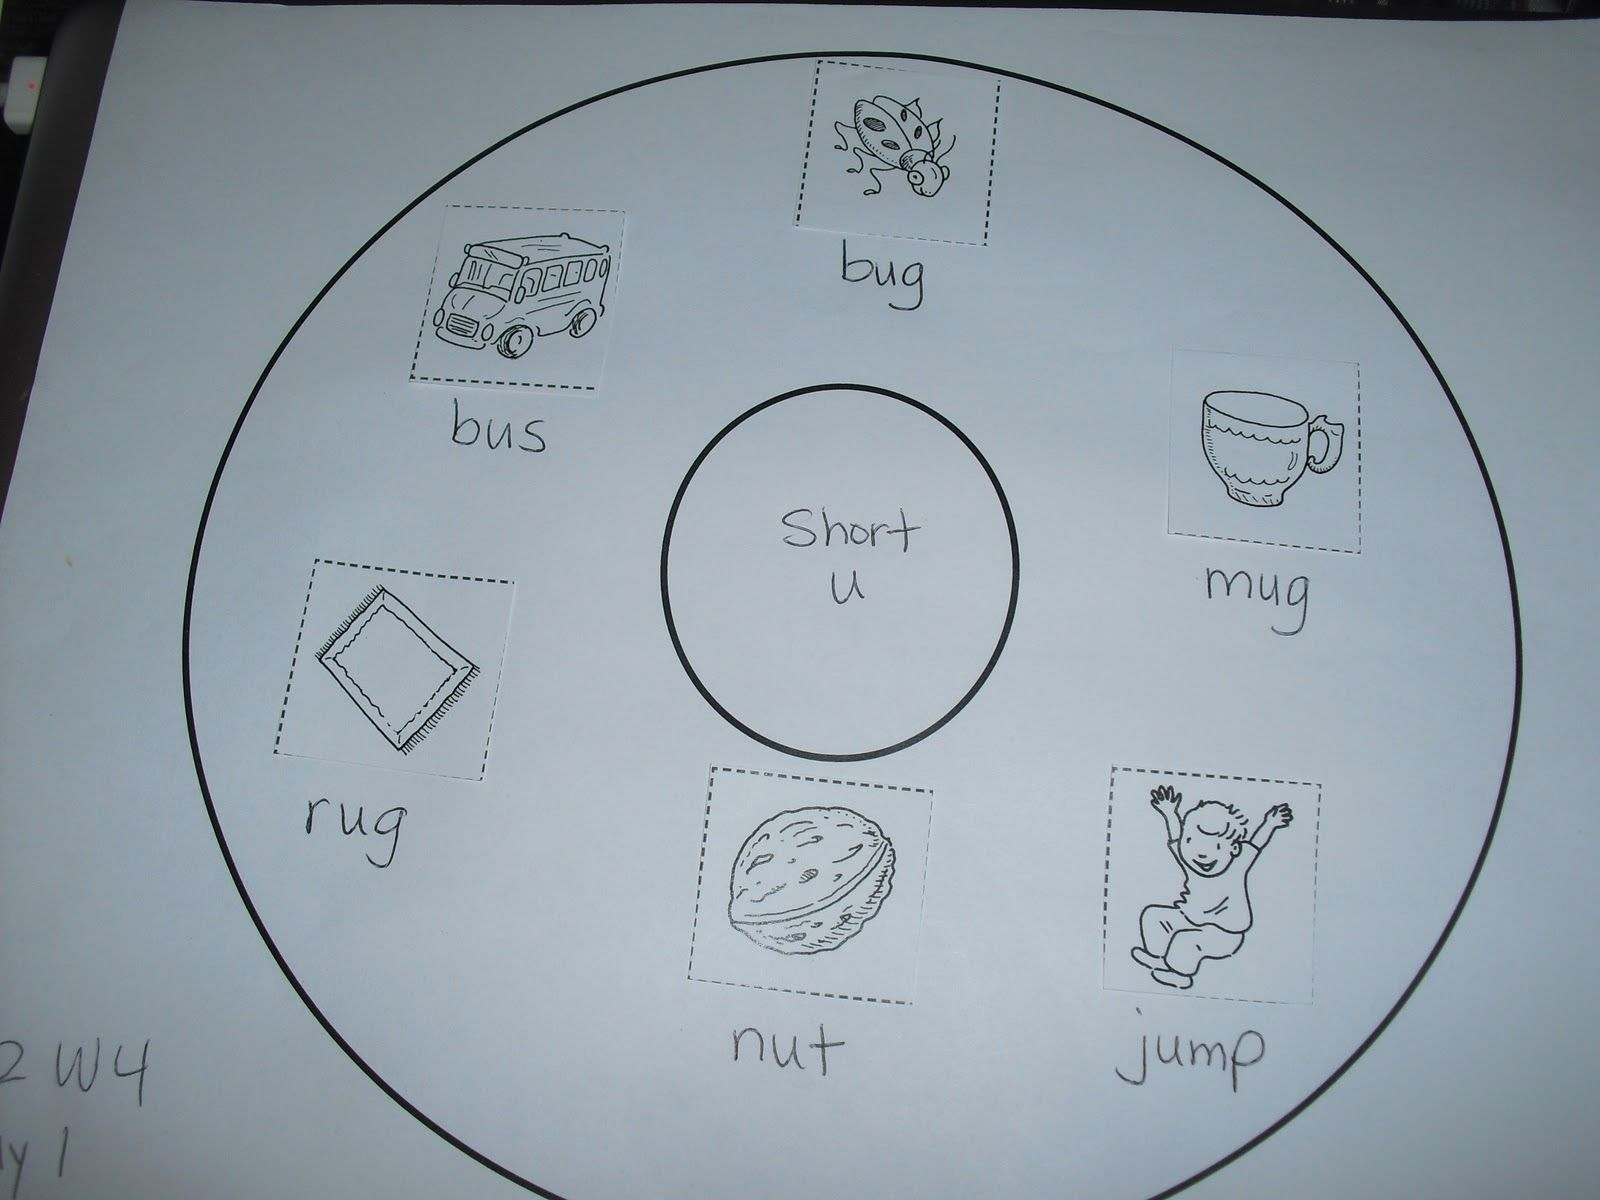 circle map   thinking maps   Pinterest   Thinking maps and Literacy circle map